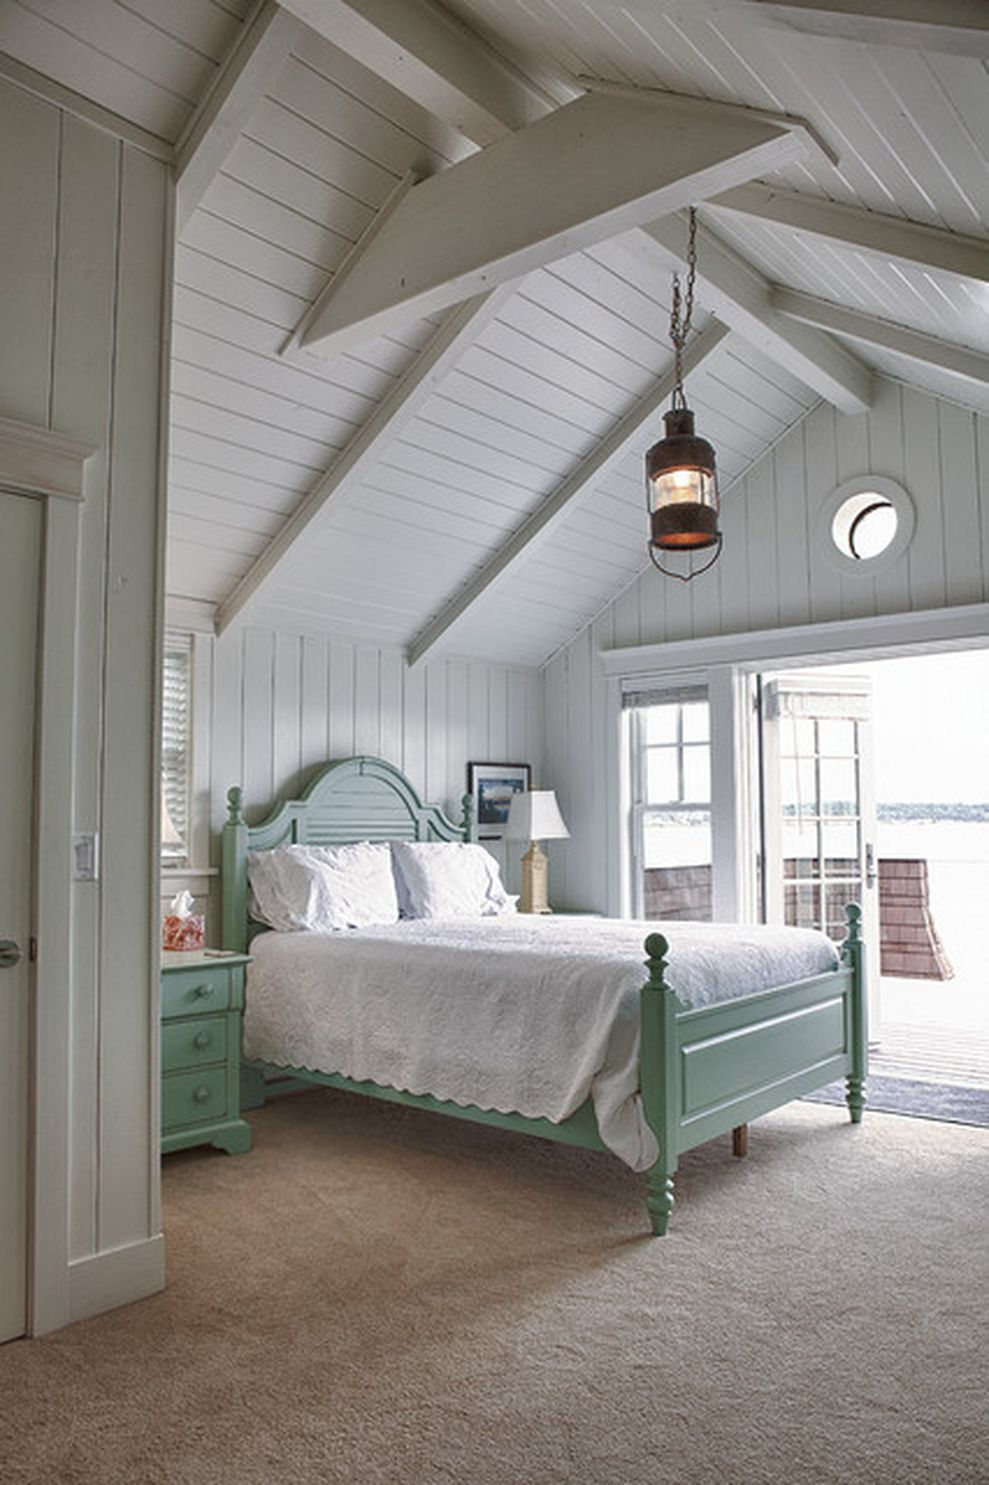 Joanna gaines master bedroom bedding  Gorgeous Farmhouse Master Bedroom Decorating Ideas   Farmhouse